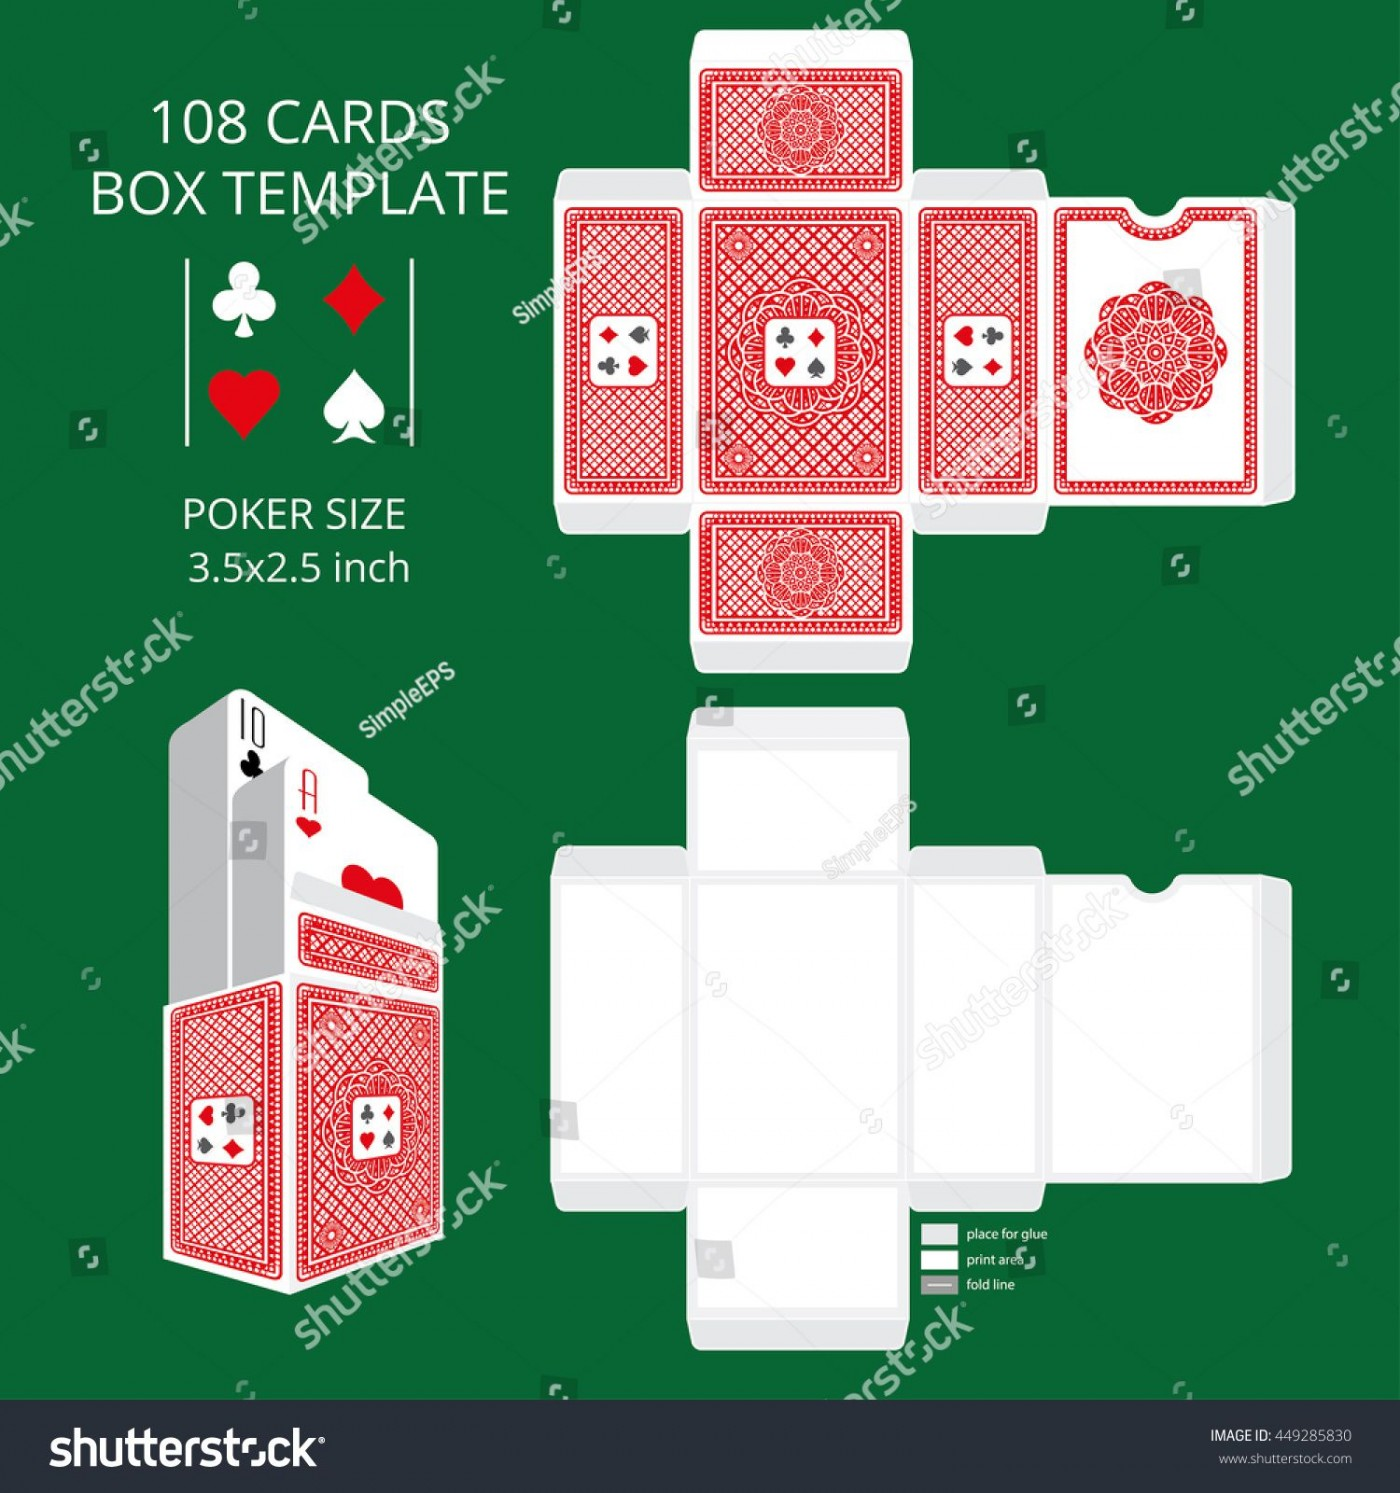 007 Fascinating Playing Card Size Template High Definition  Standard Poker1400